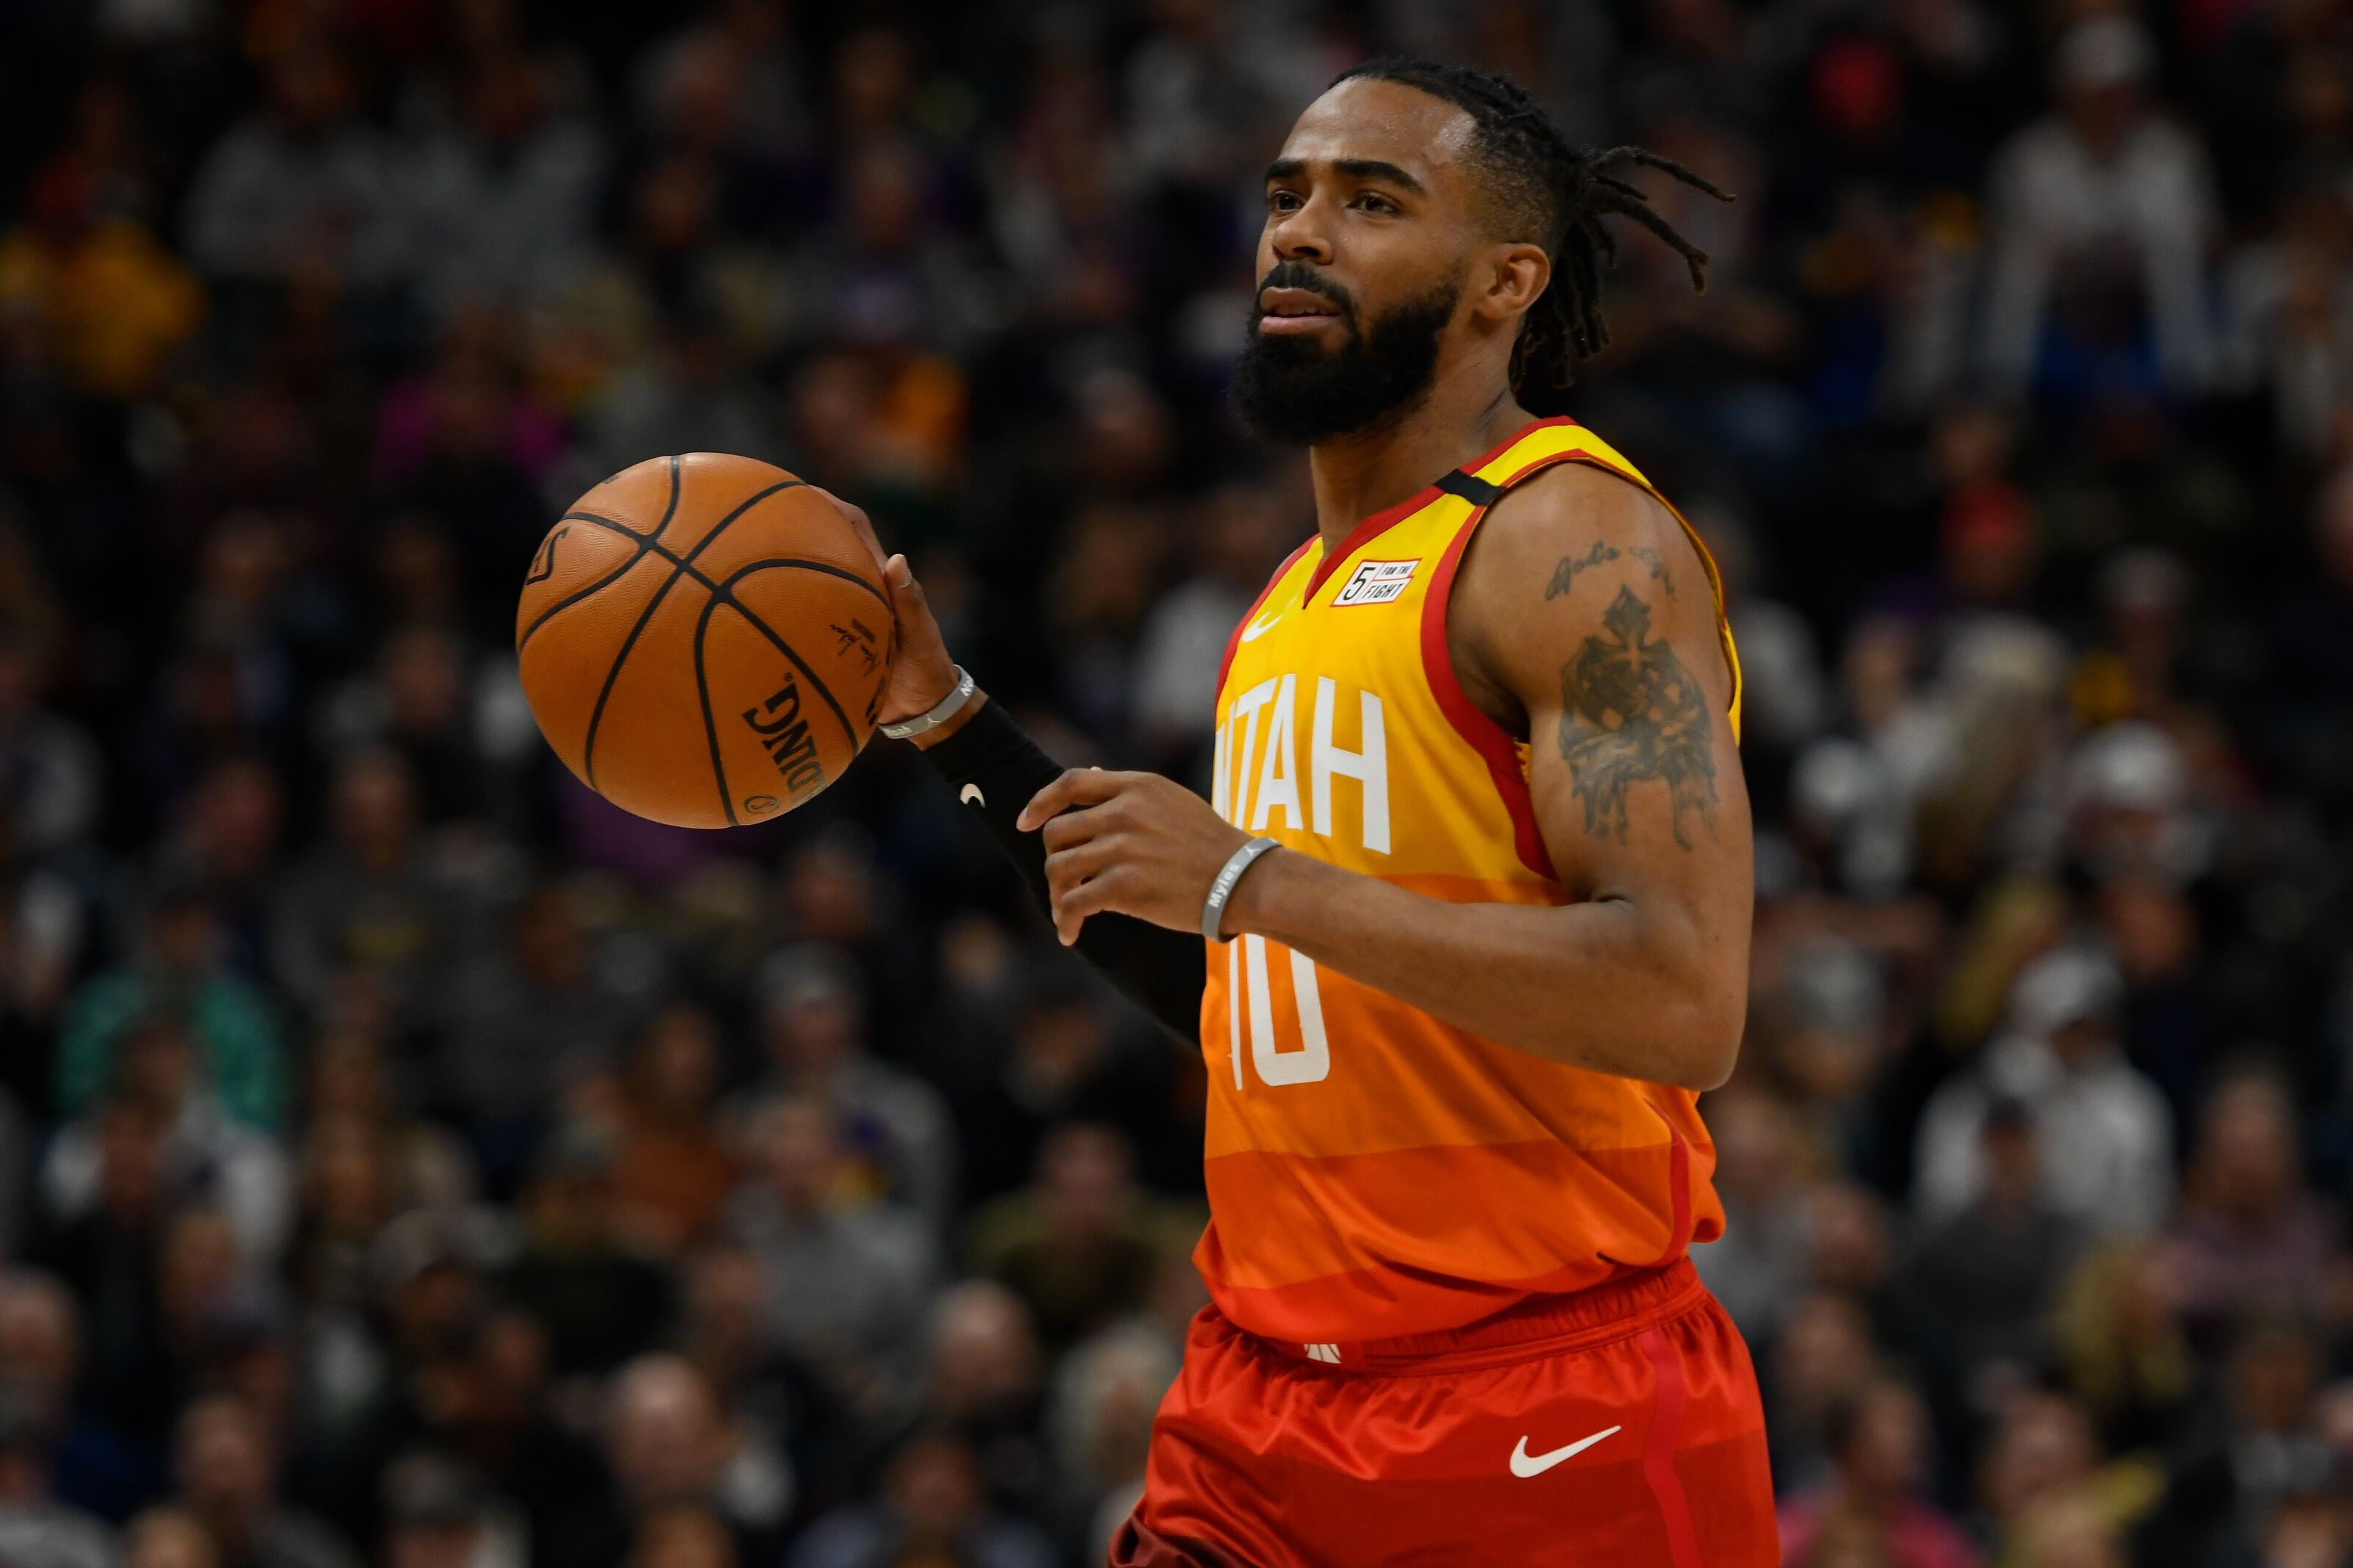 Utah Jazz: Mike Conley's bright performance ideally a sign of things to come